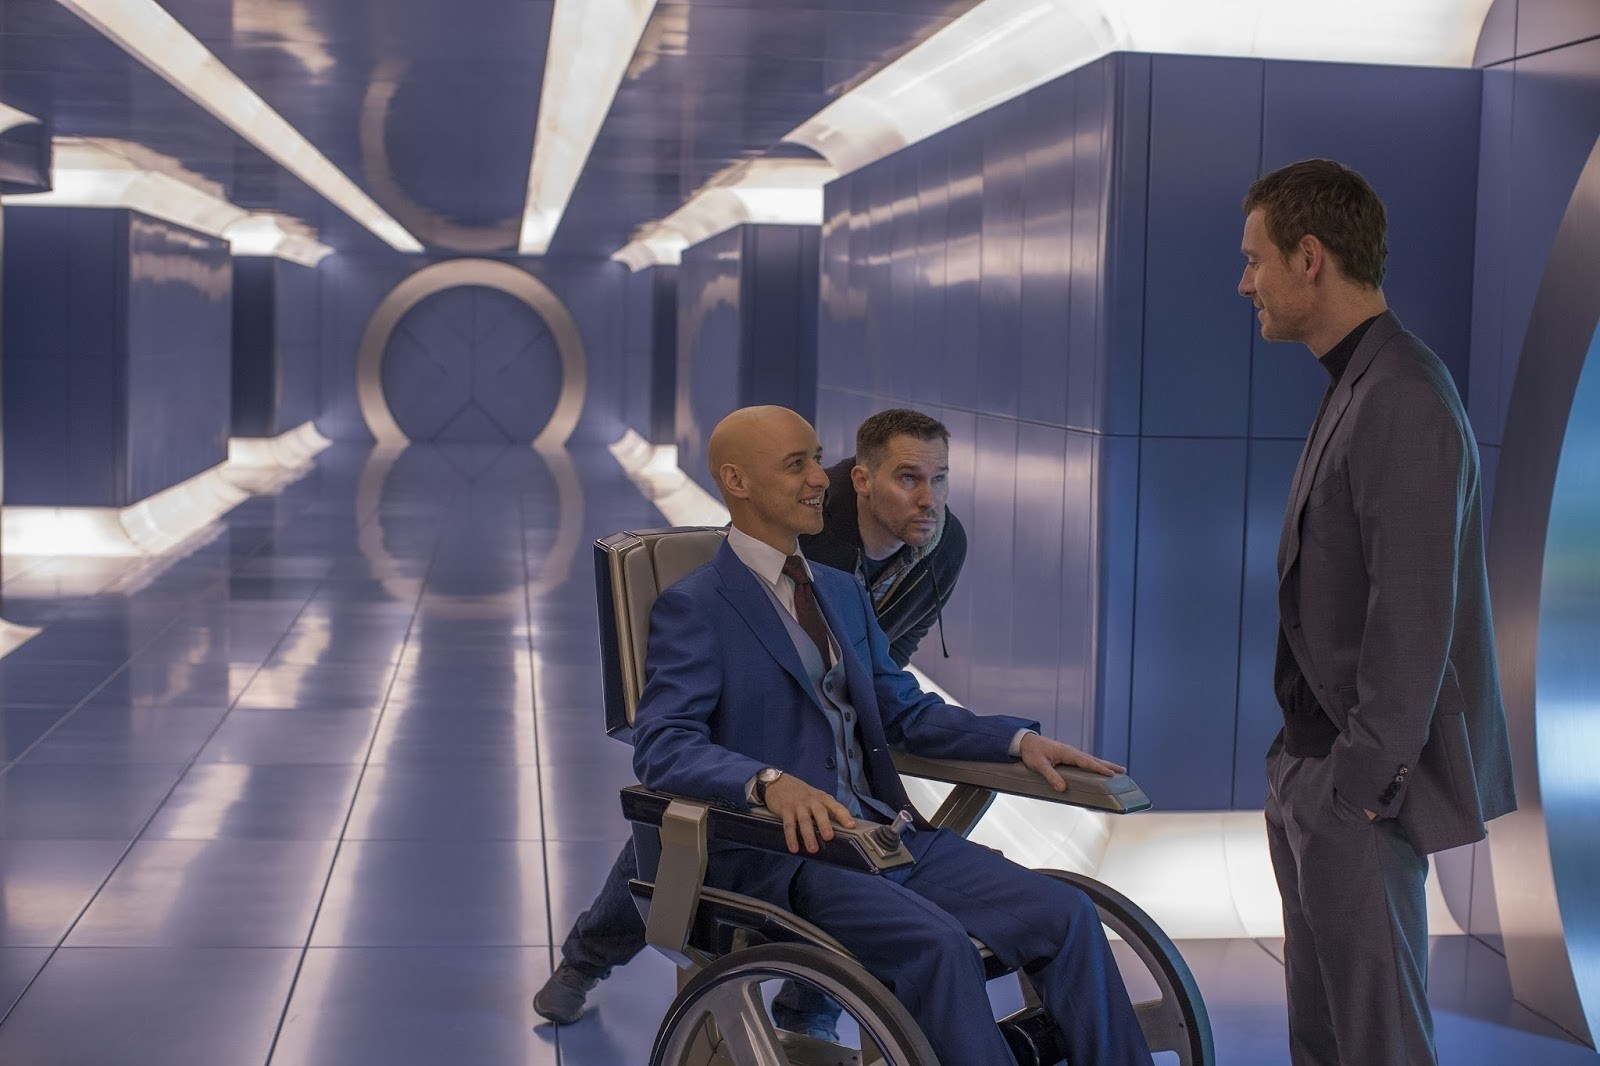 On Set of X-Men: Apocalypse (2016) Behind the Scenes